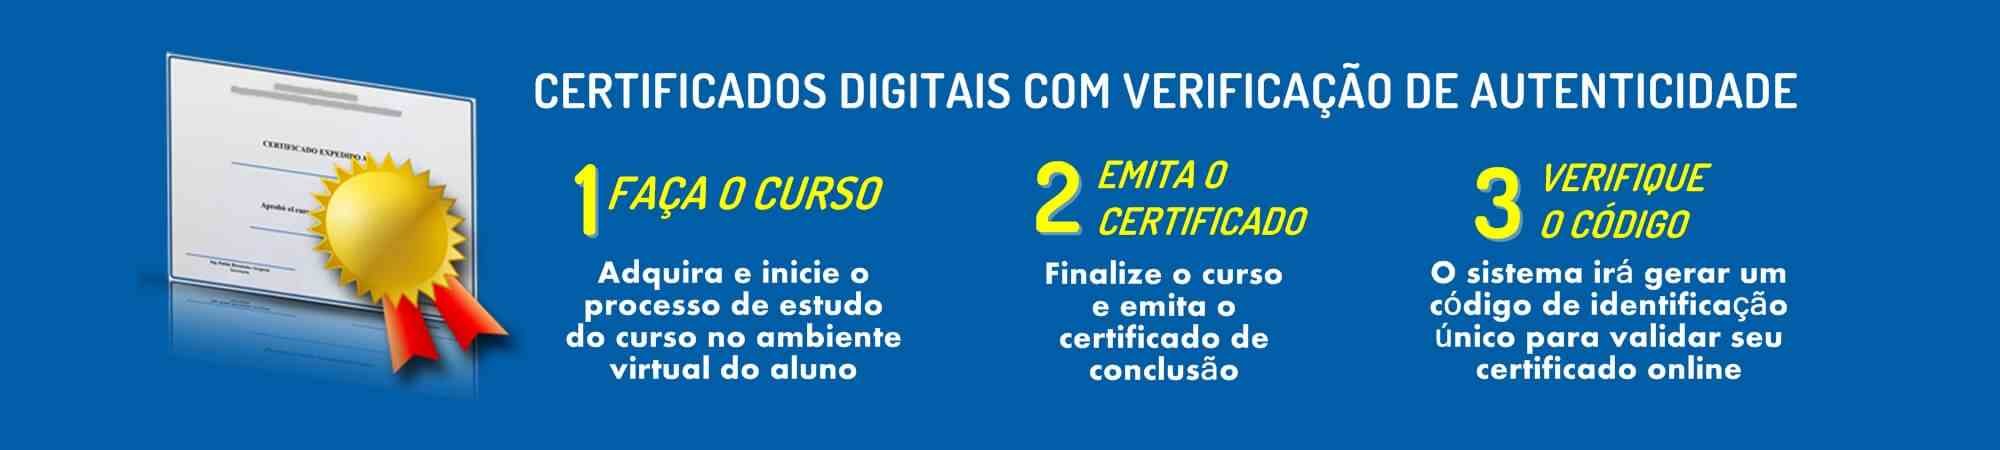 Certificado autenticado